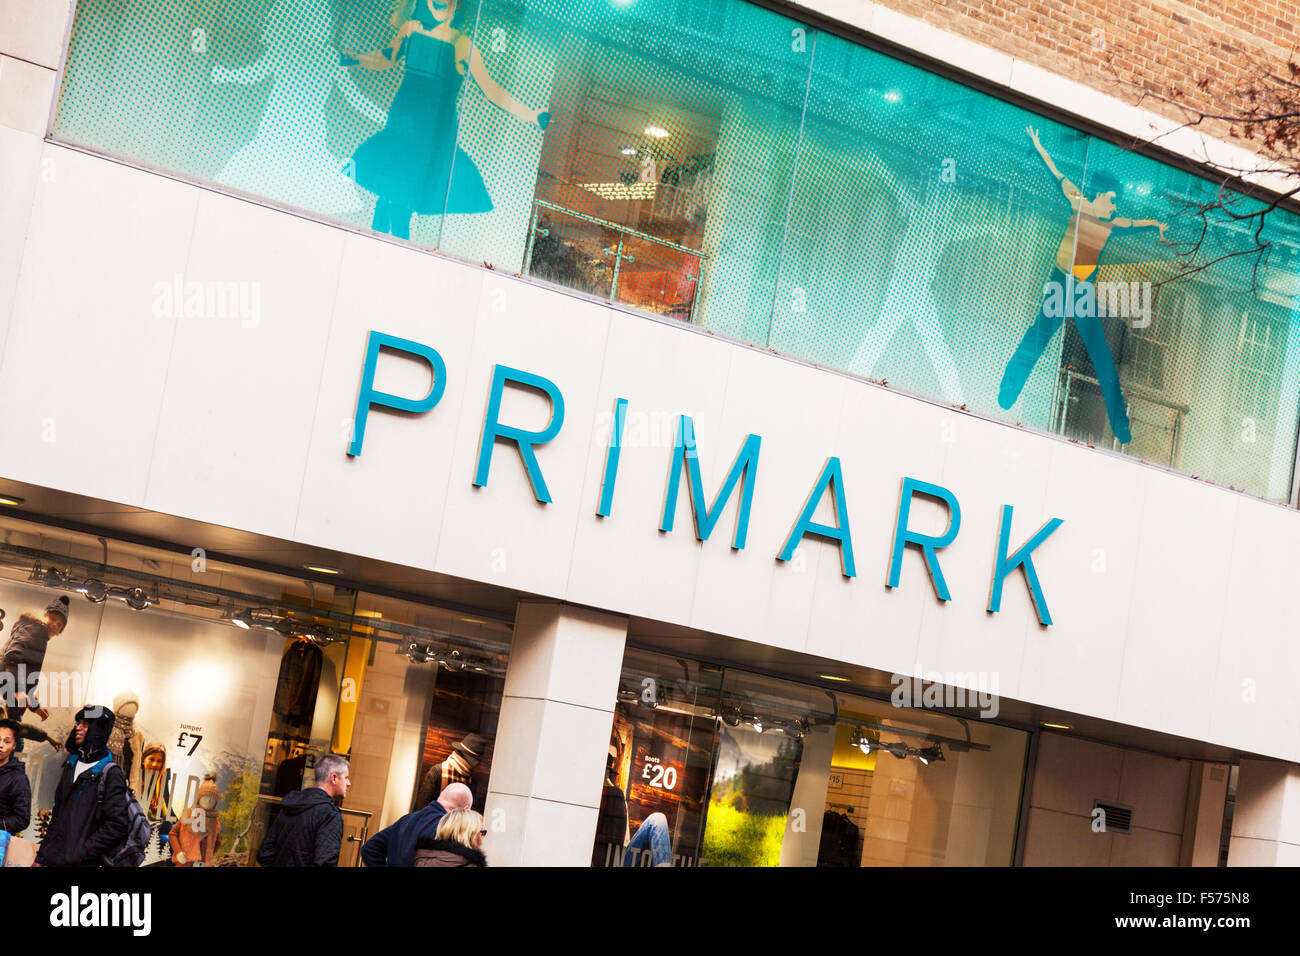 Primark Shop discount store name sign building exterior facade entrance Nottingham City centre UK GB England Nottinghamshire - Stock Image